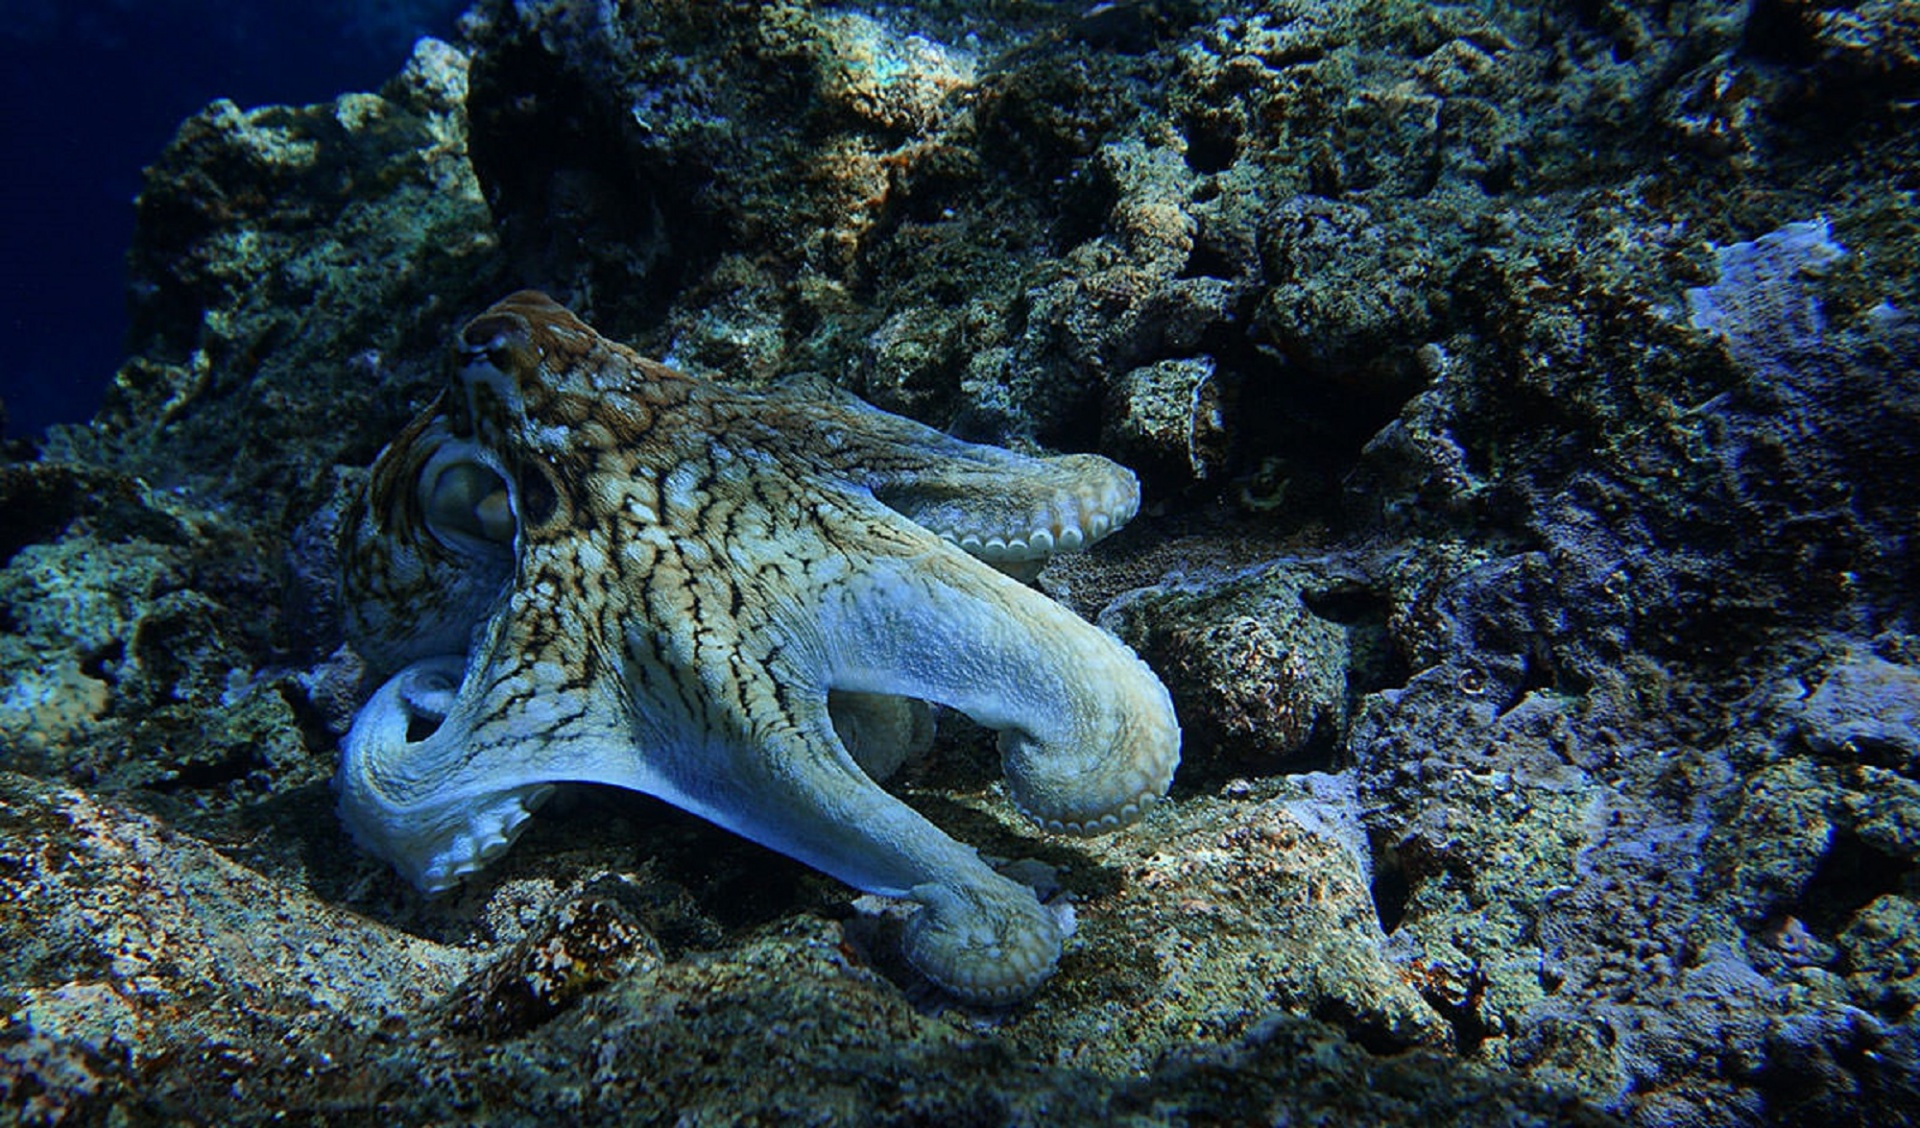 Octopus on ocean floor